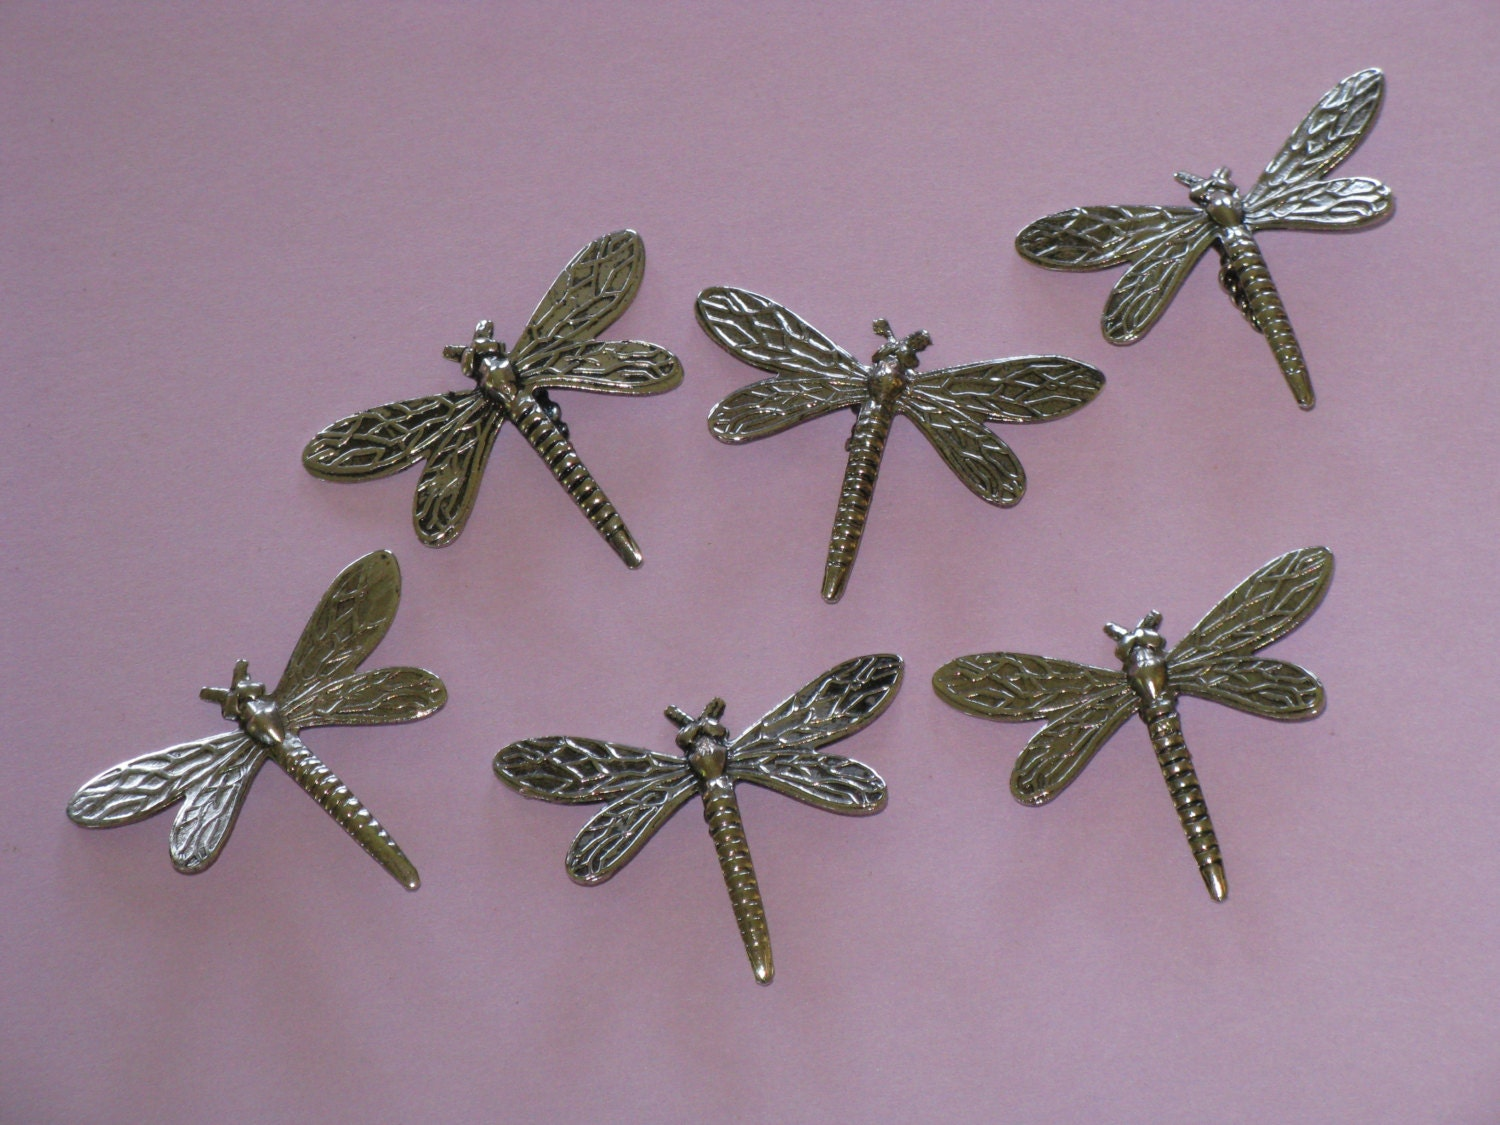 Dragonfly Embellishments Silver Metal Lot Of 6 Dragonflies For